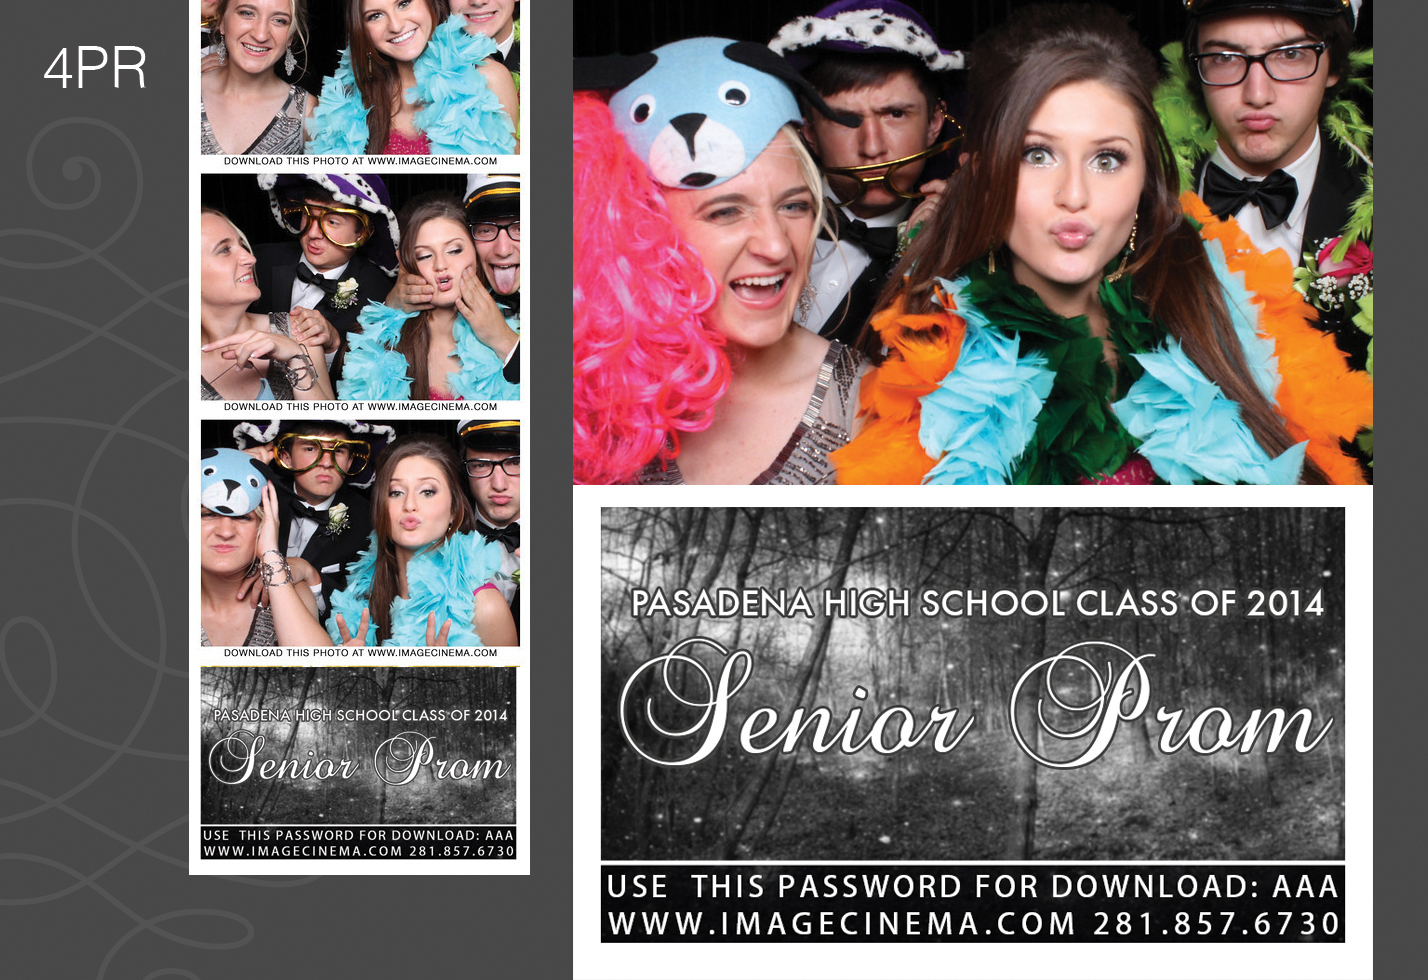 Photo Booth 4PR